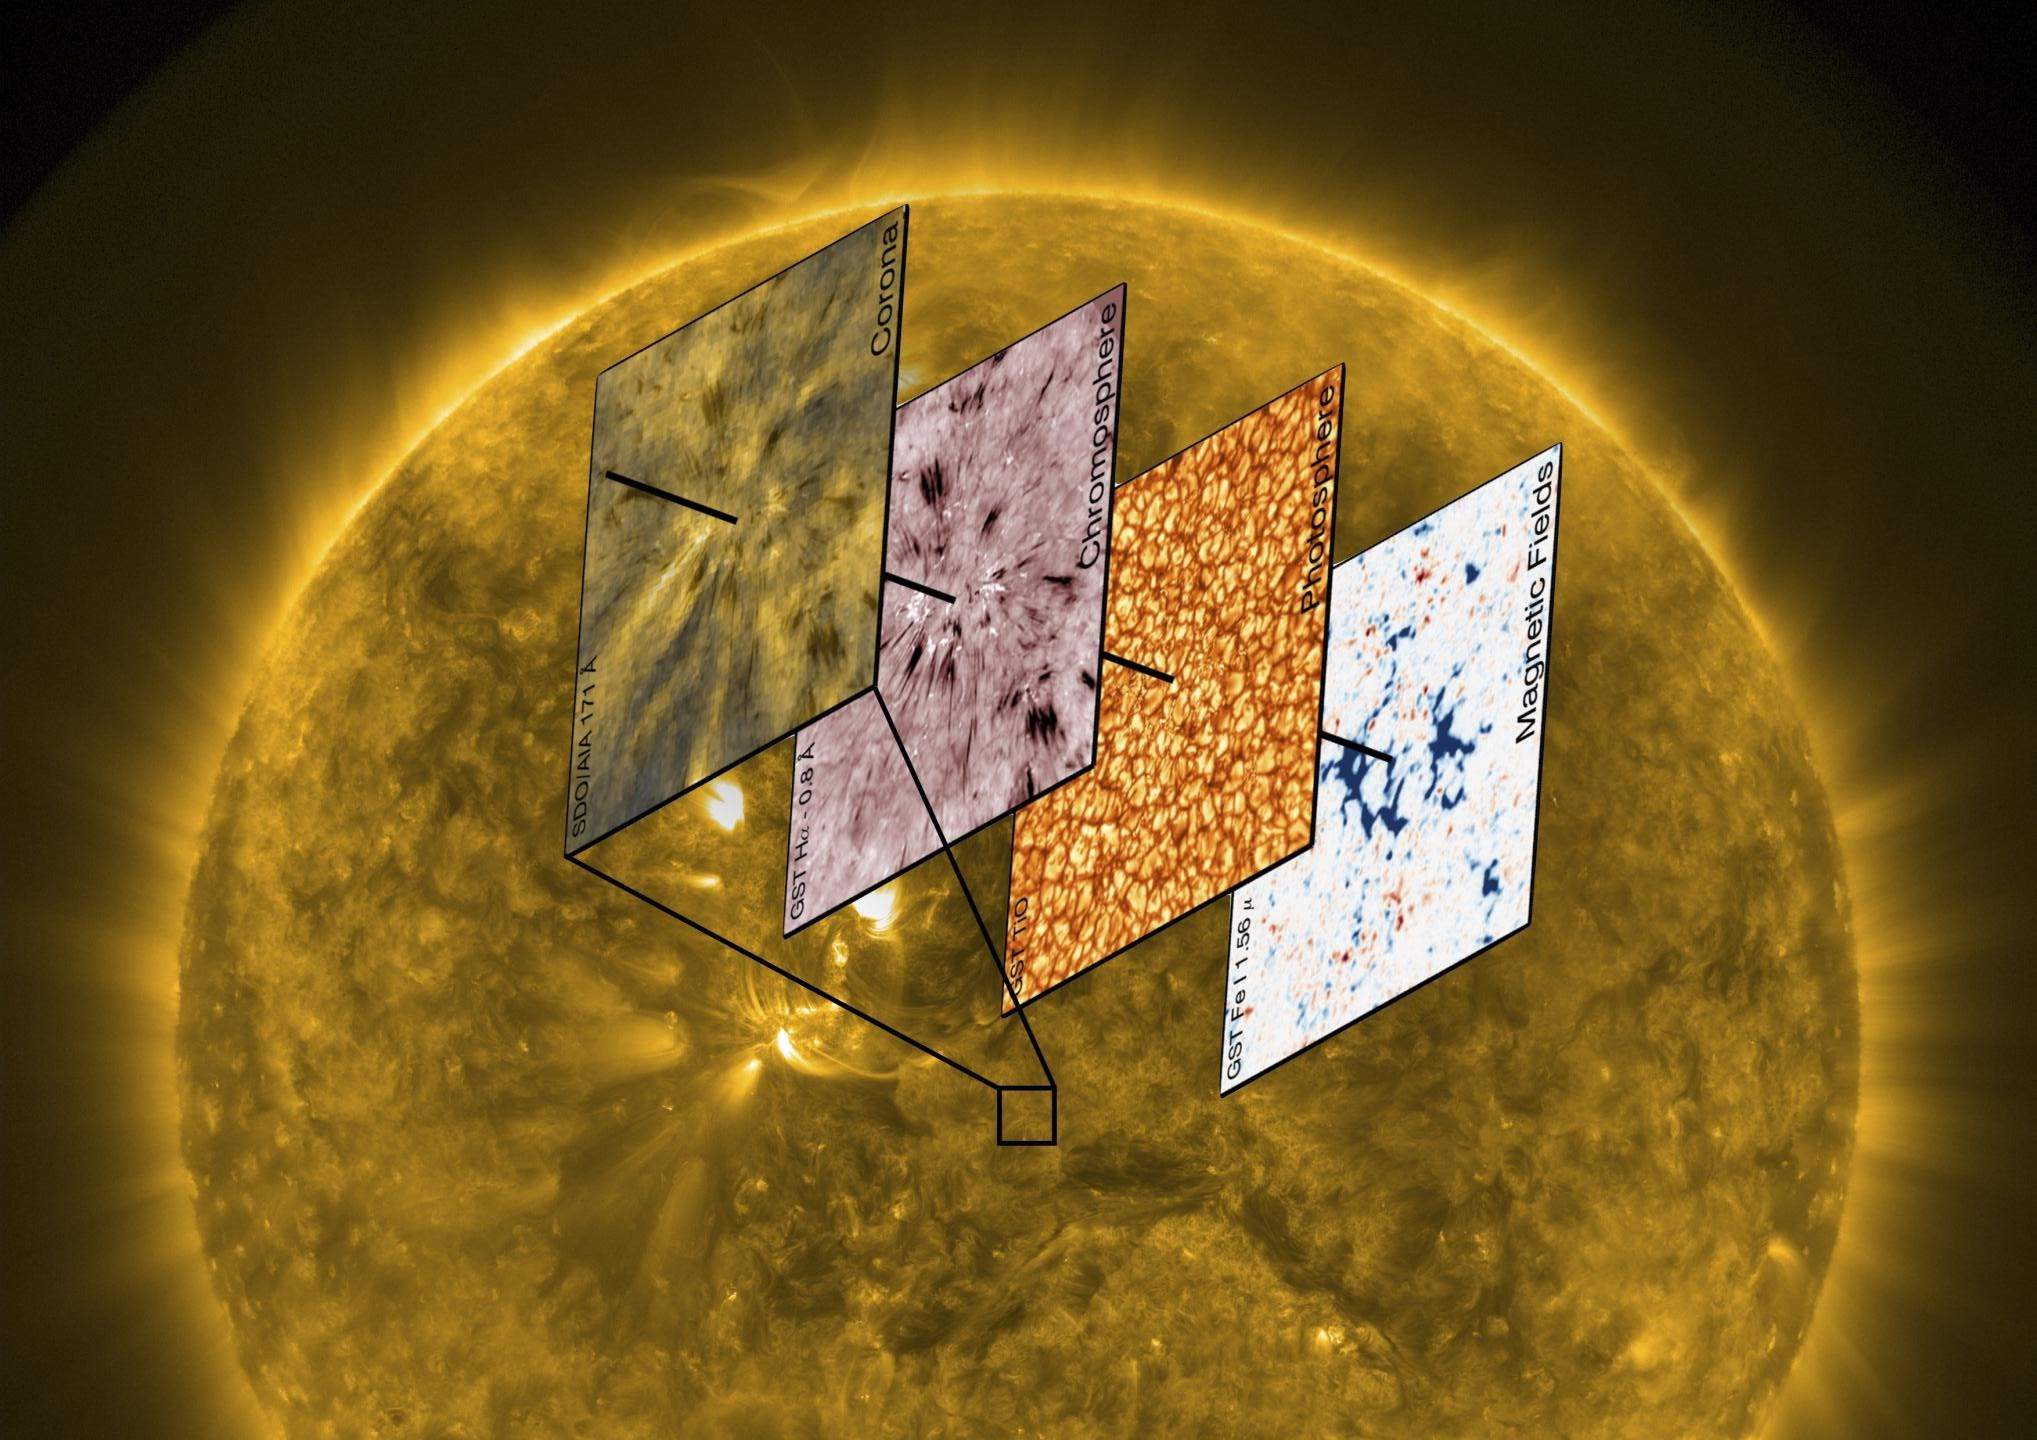 Groundbreaking New Images Peel Away Layers of a Stellar Mystery